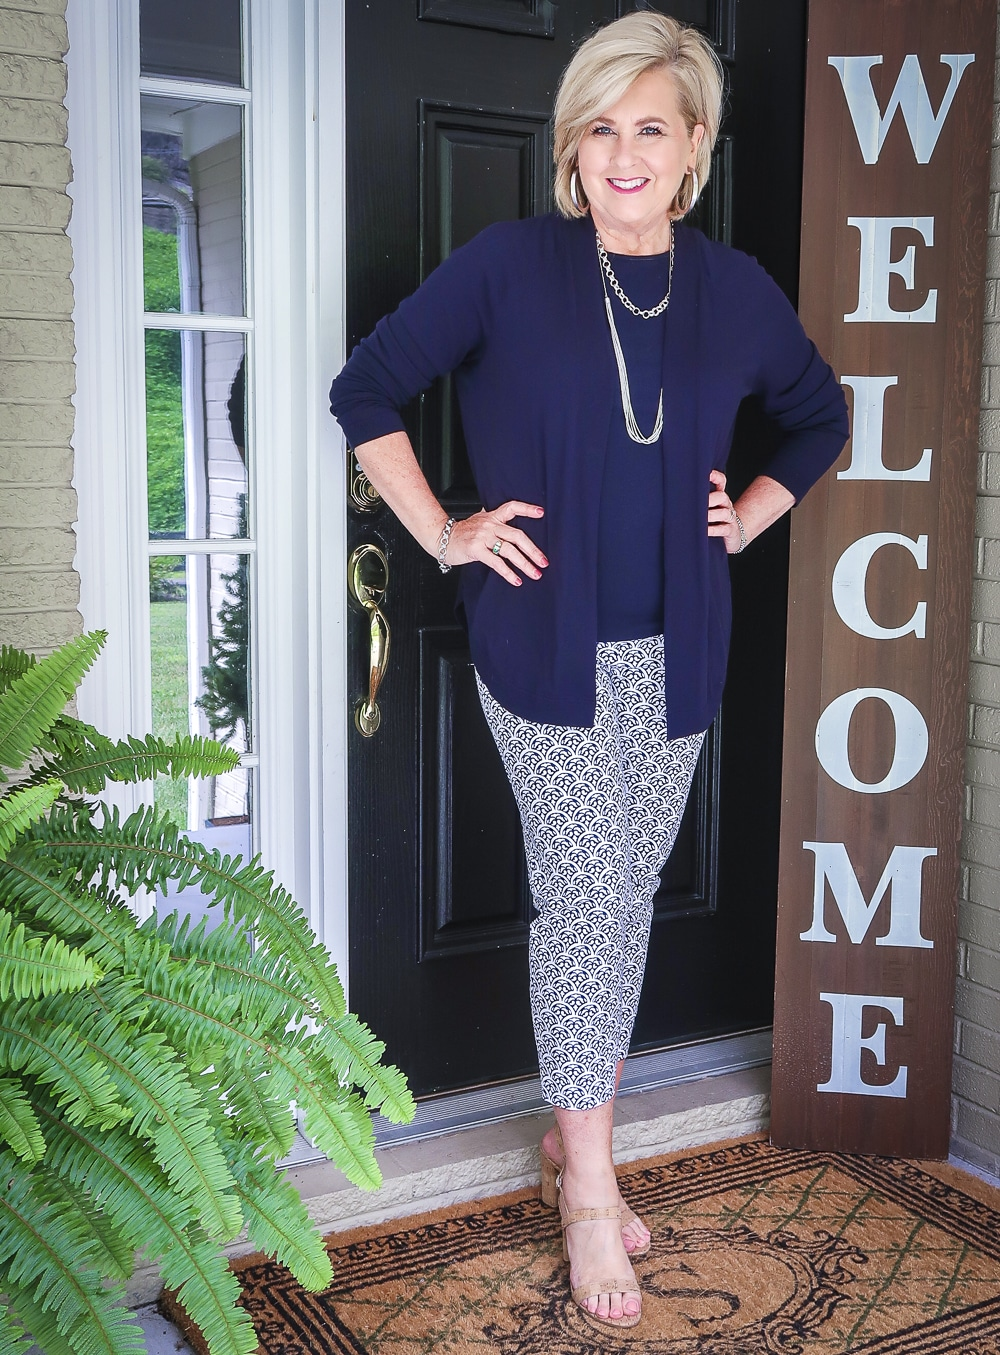 Fashion Blogger 50 Is Not Old is wearing a navy cardigan from Talbots with a navy tank top and blue and white ankle pants